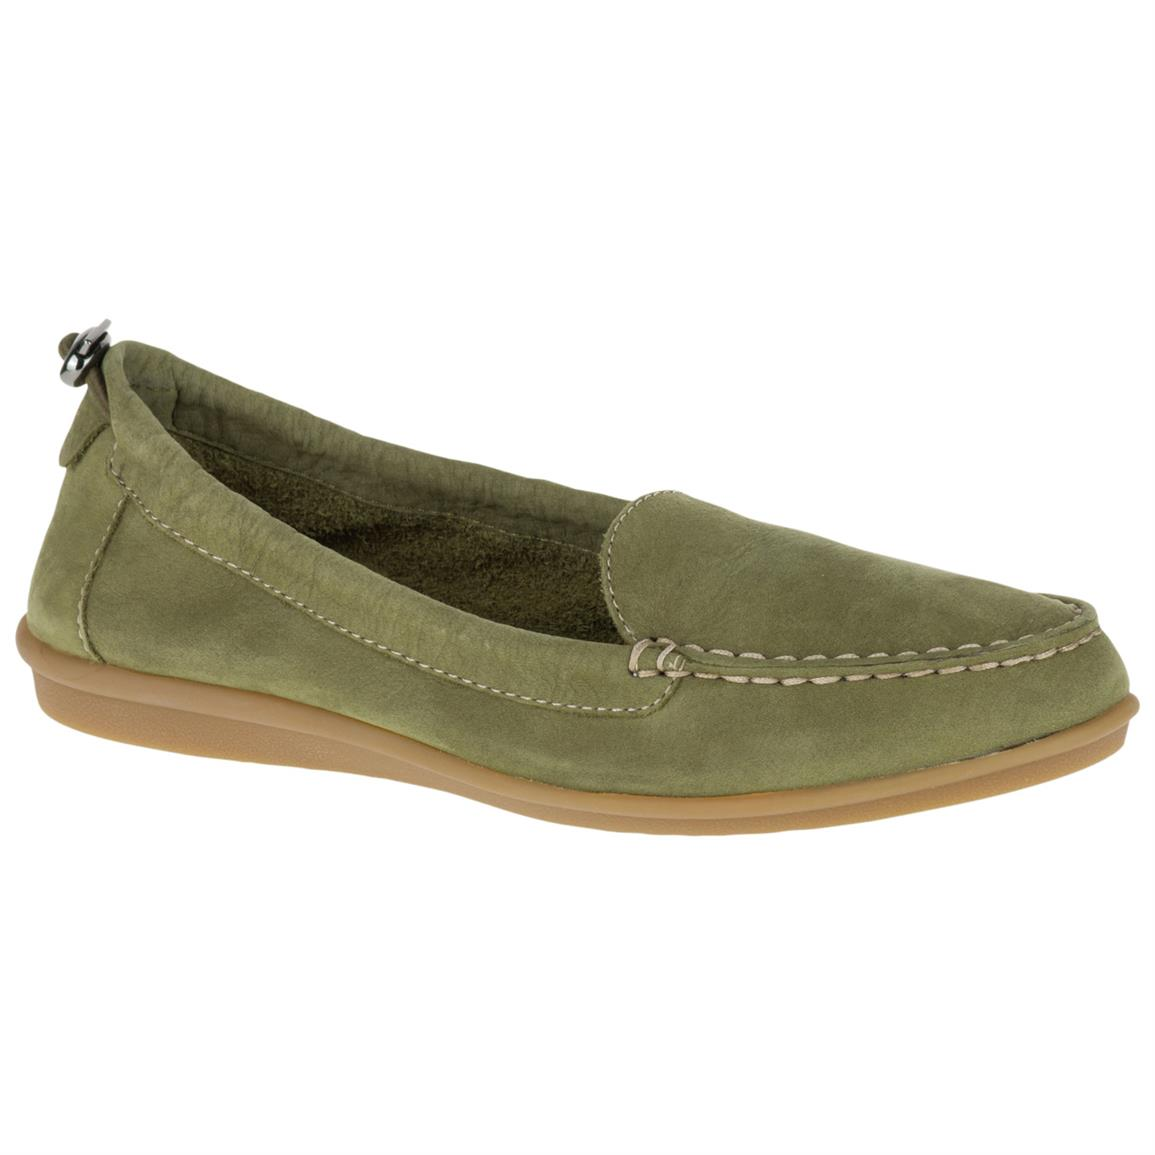 Hush Puppies Women's Endless Wink Casual Shoes, Olive Nubuck